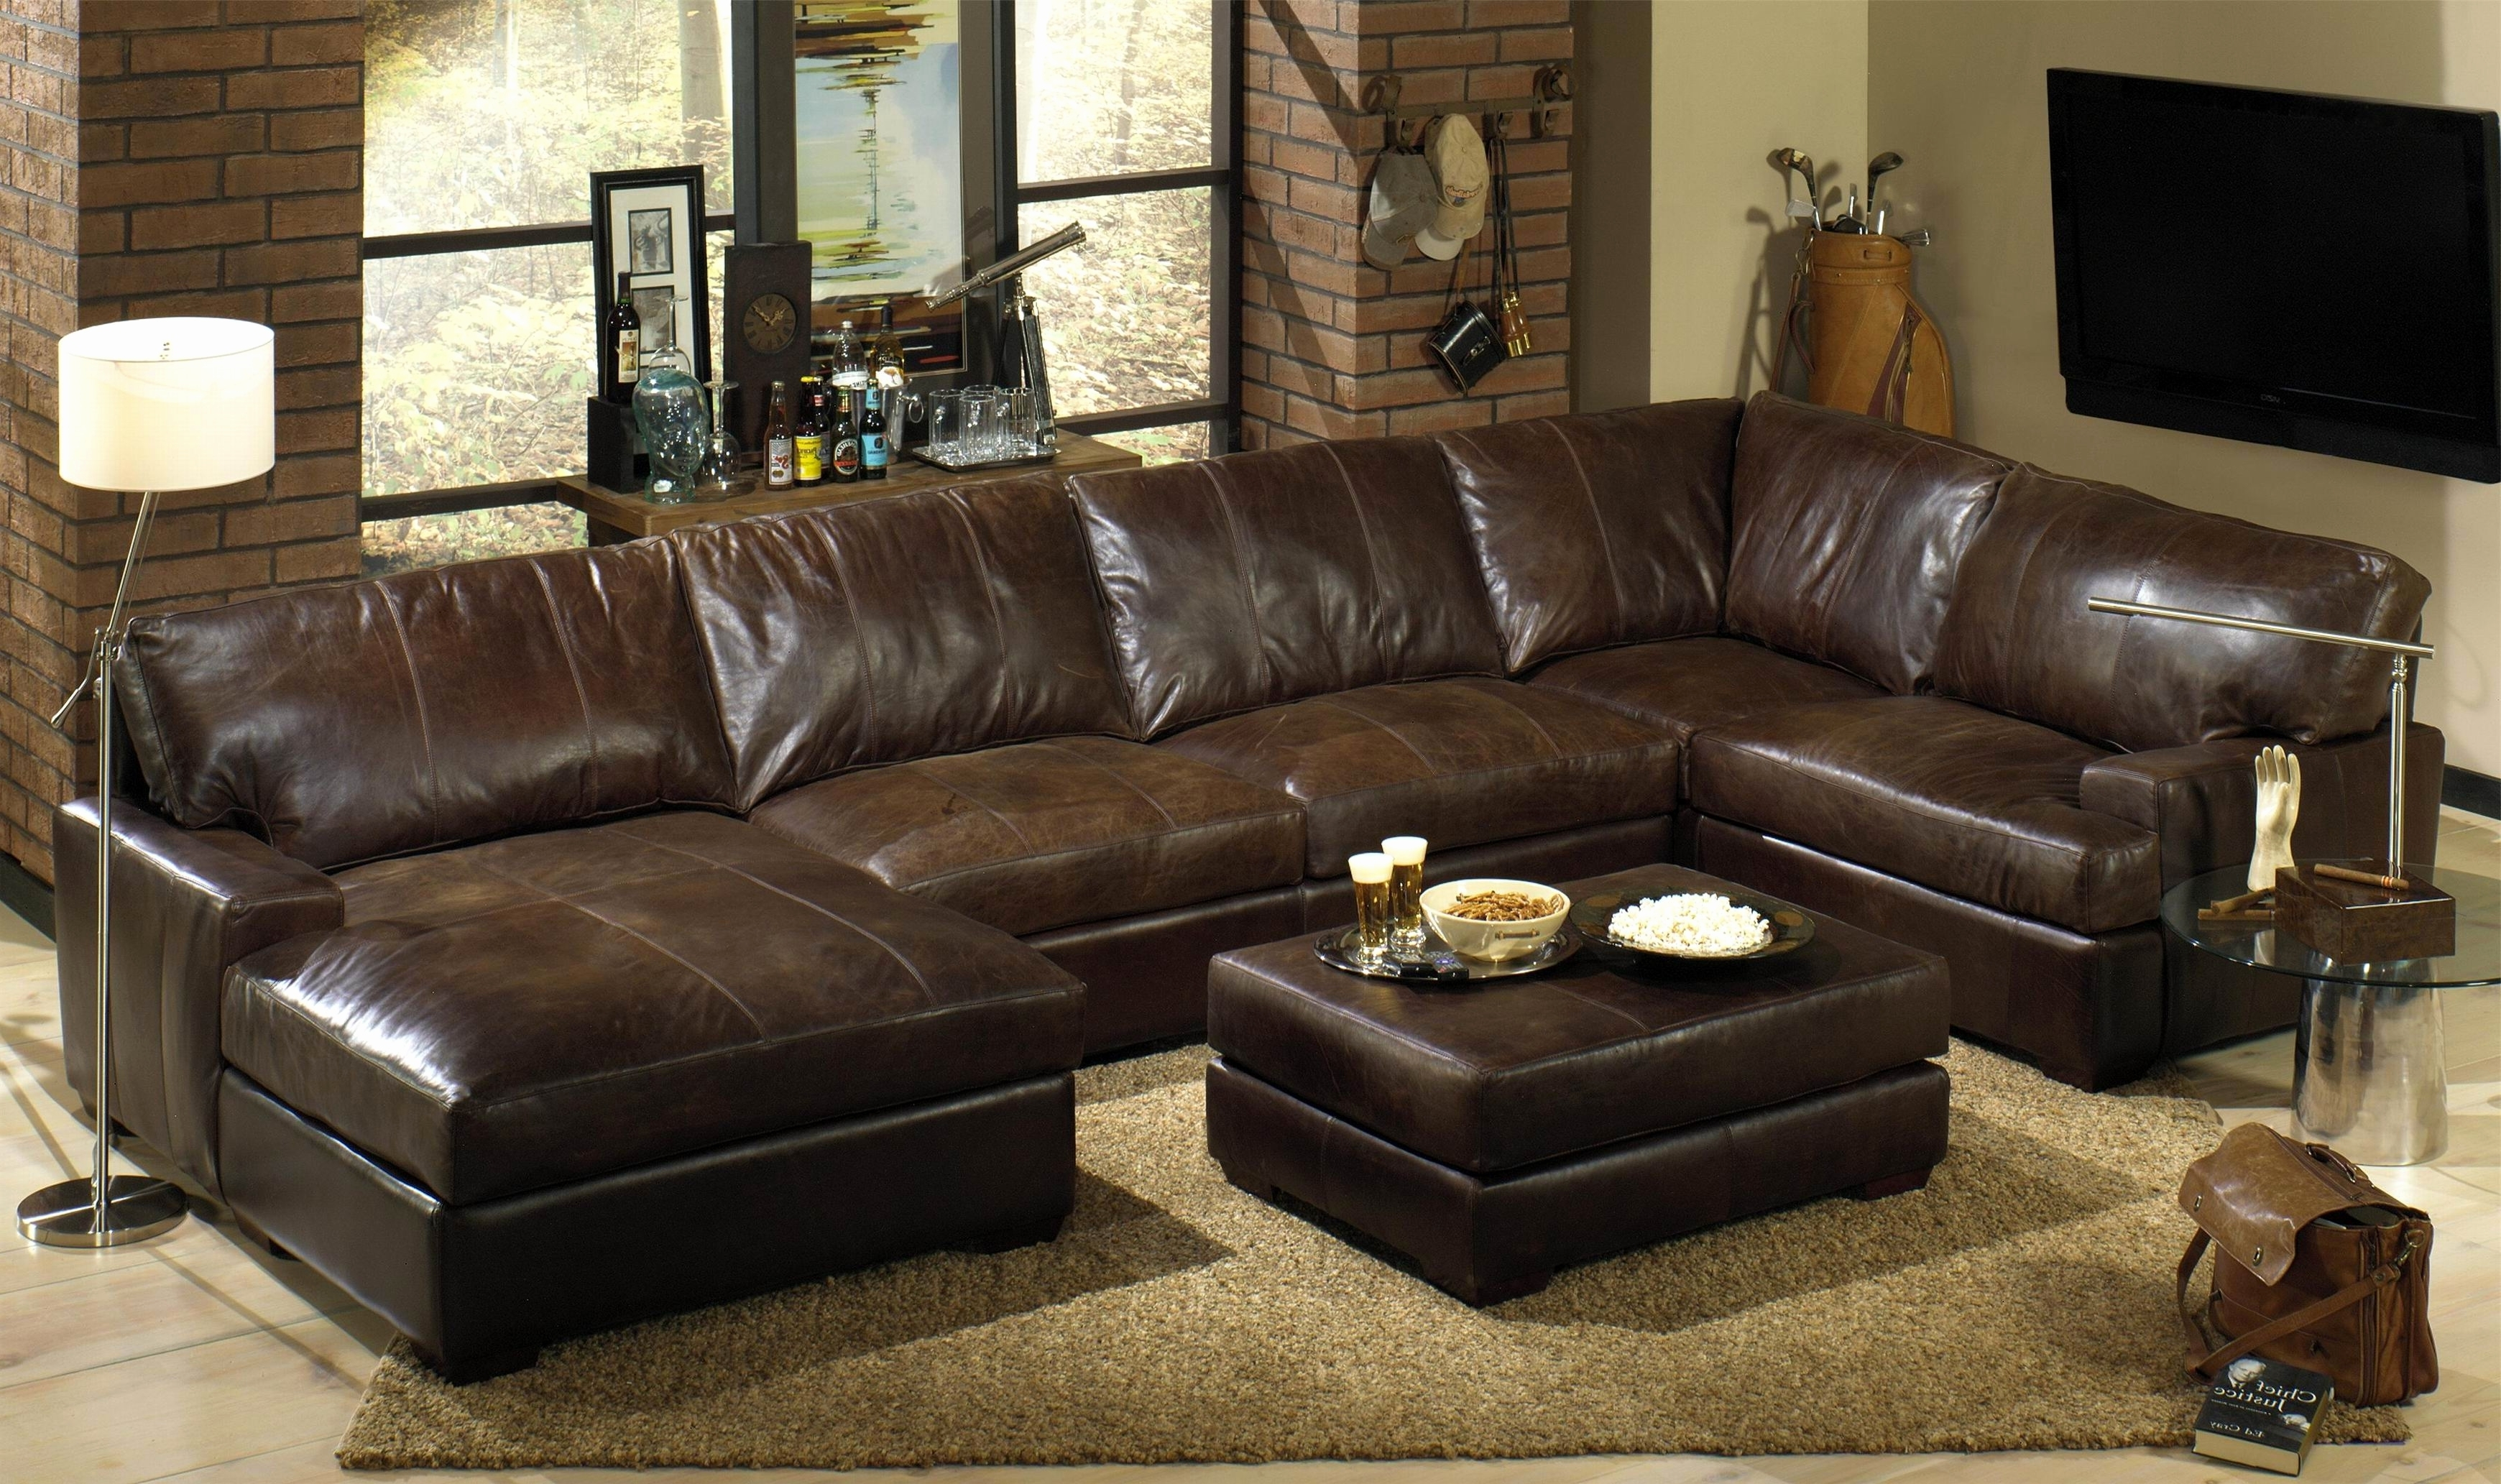 Favorite New Microsuede Sectional With Chaise 2018 – Couches Ideas With Regard To Microsuede Sectional Sofas (View 6 of 20)